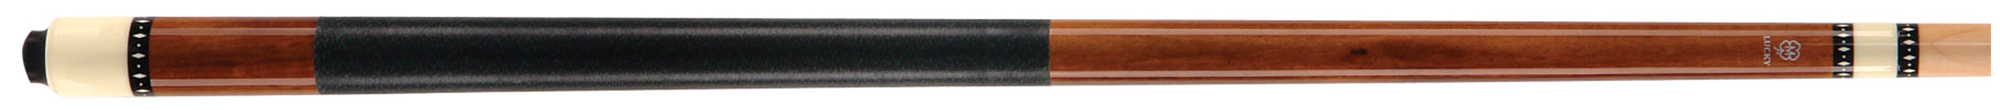 PK3071-9: Lucky L9 Brown with Irish Linen handle by McDermott #1